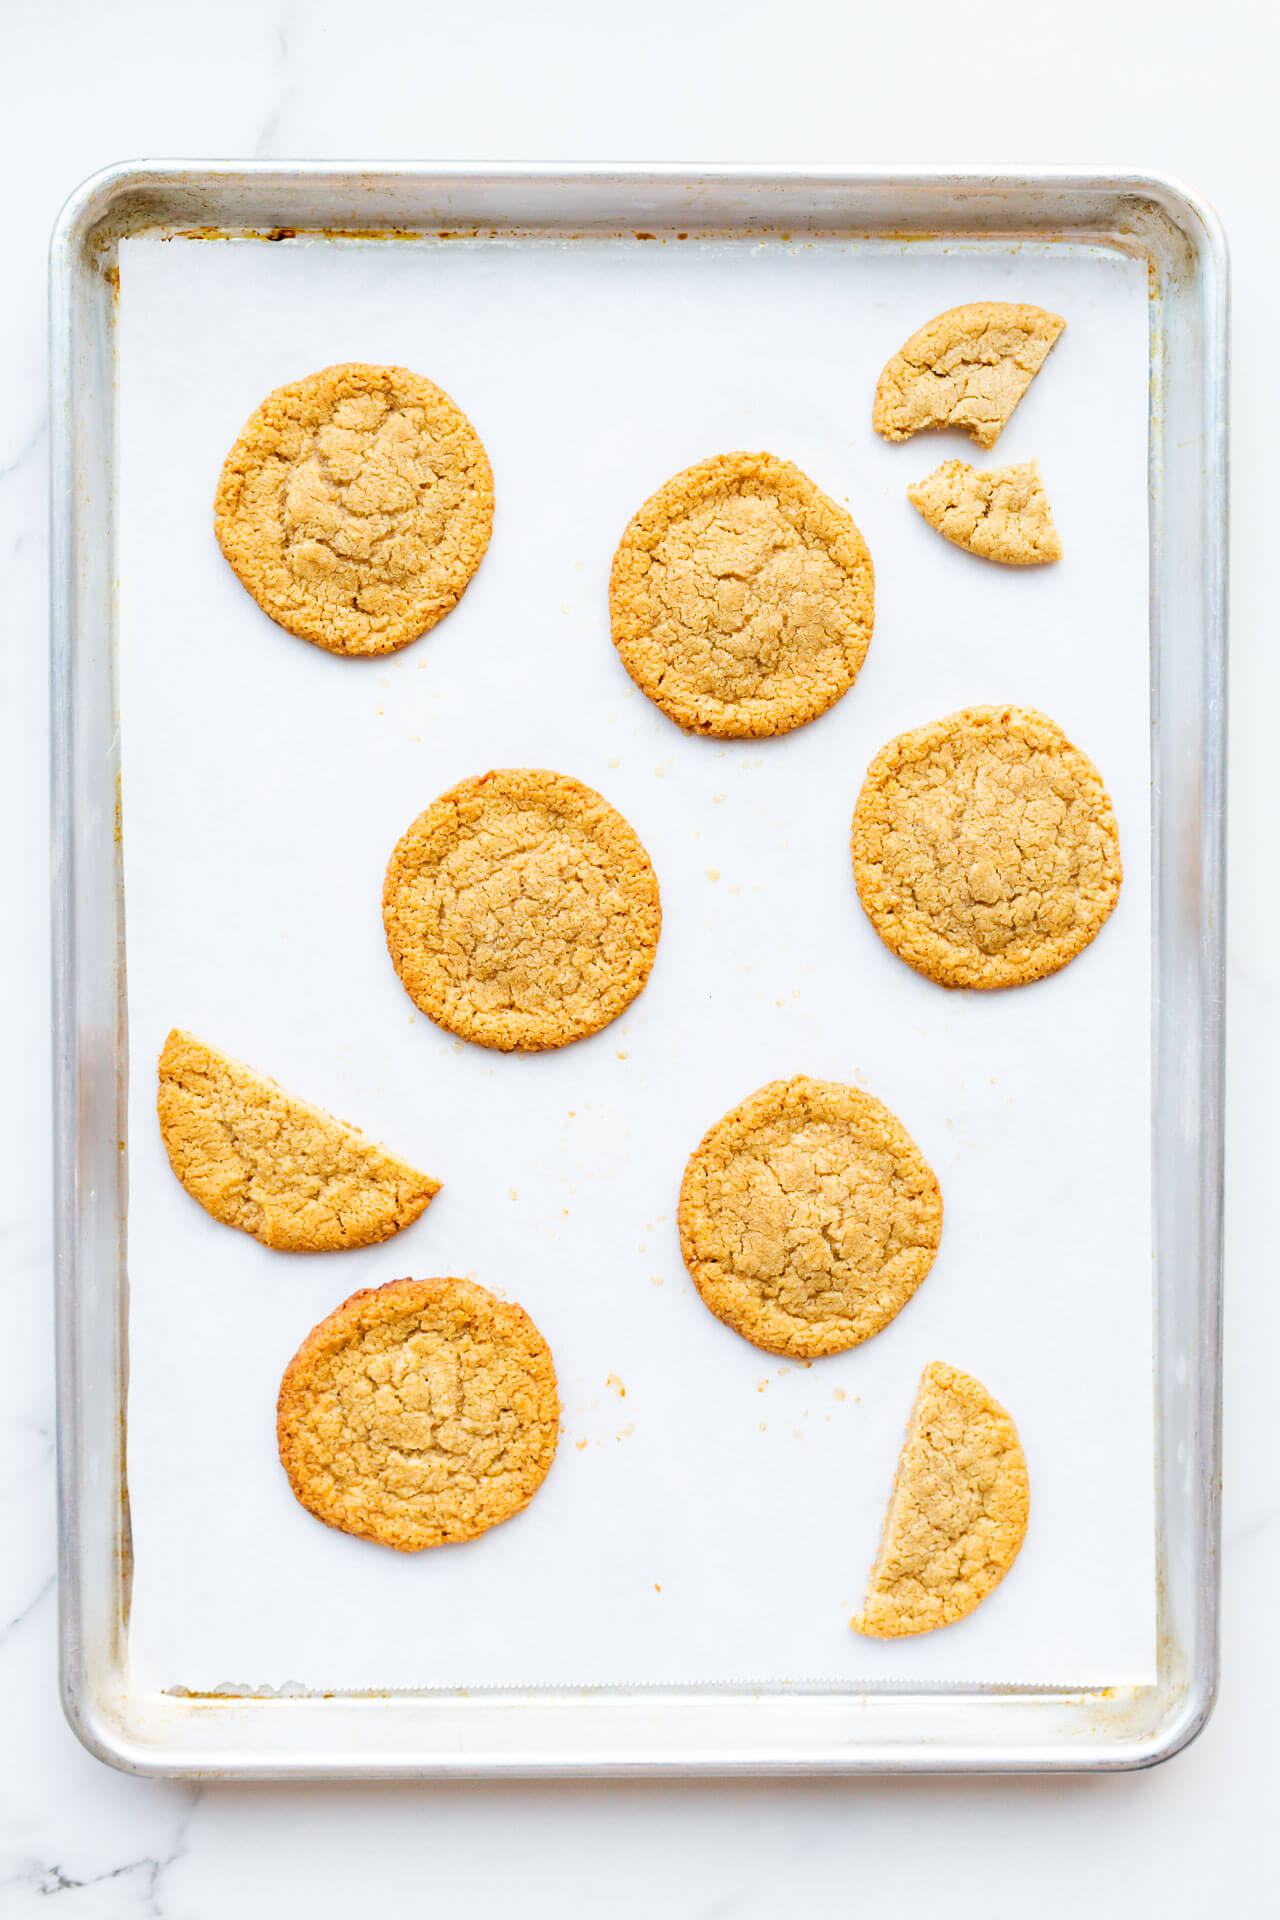 Flourless tahini cookies made with all natural tahini baked on a sheet lined with parchment papaer